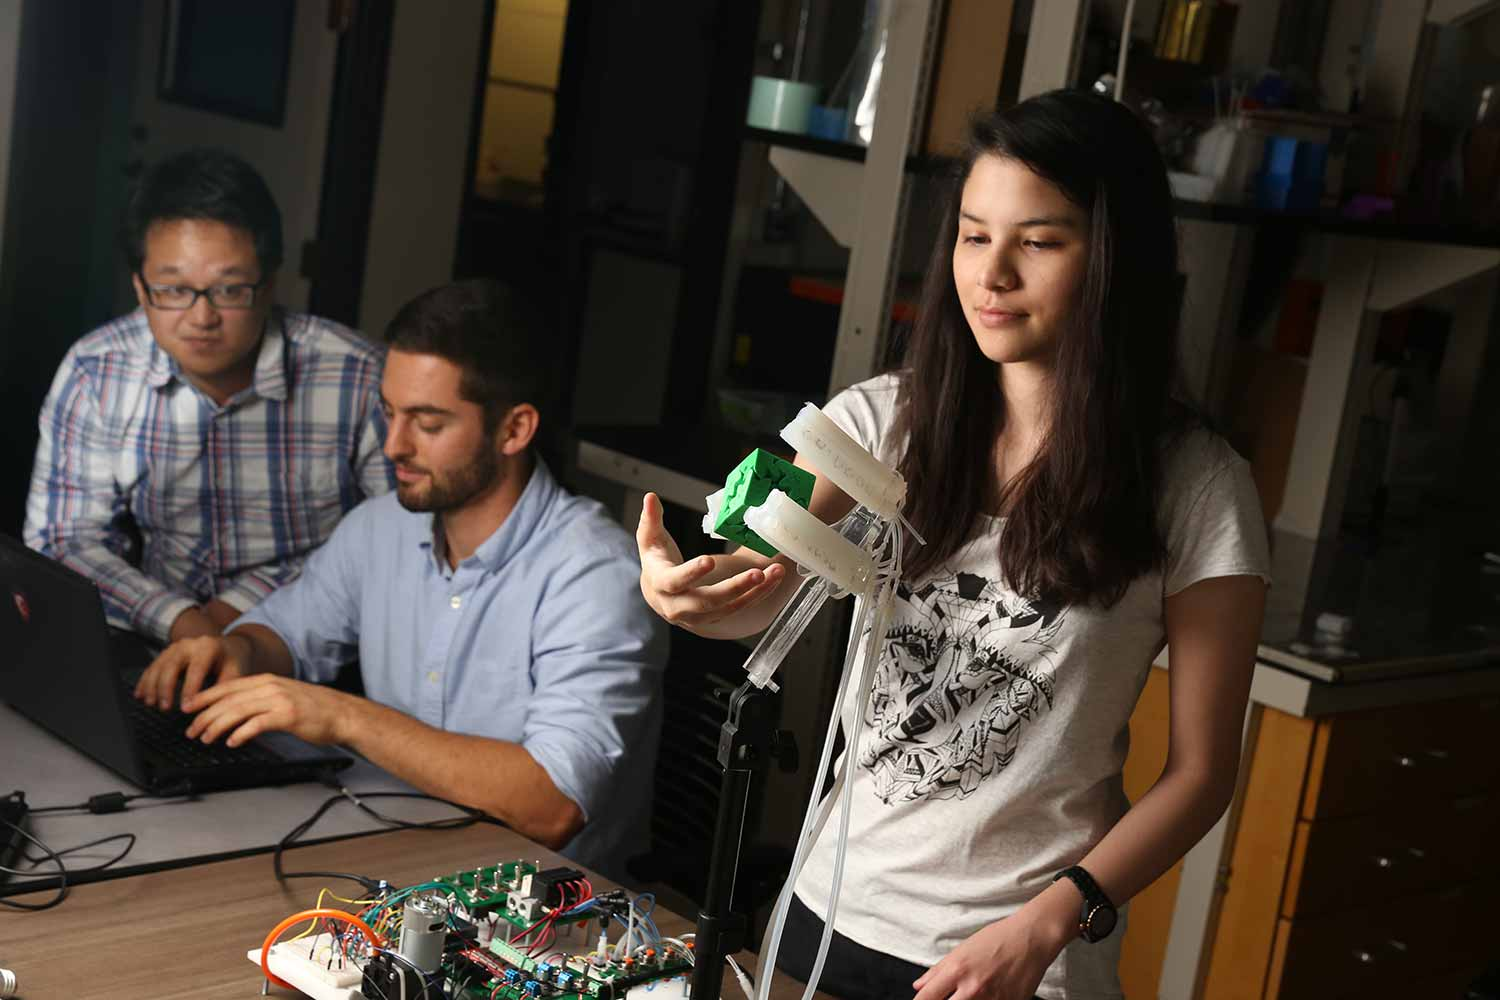 Image: Ph.D. students Benjamin Shih, Dylan Drotman and student Adriane Minori